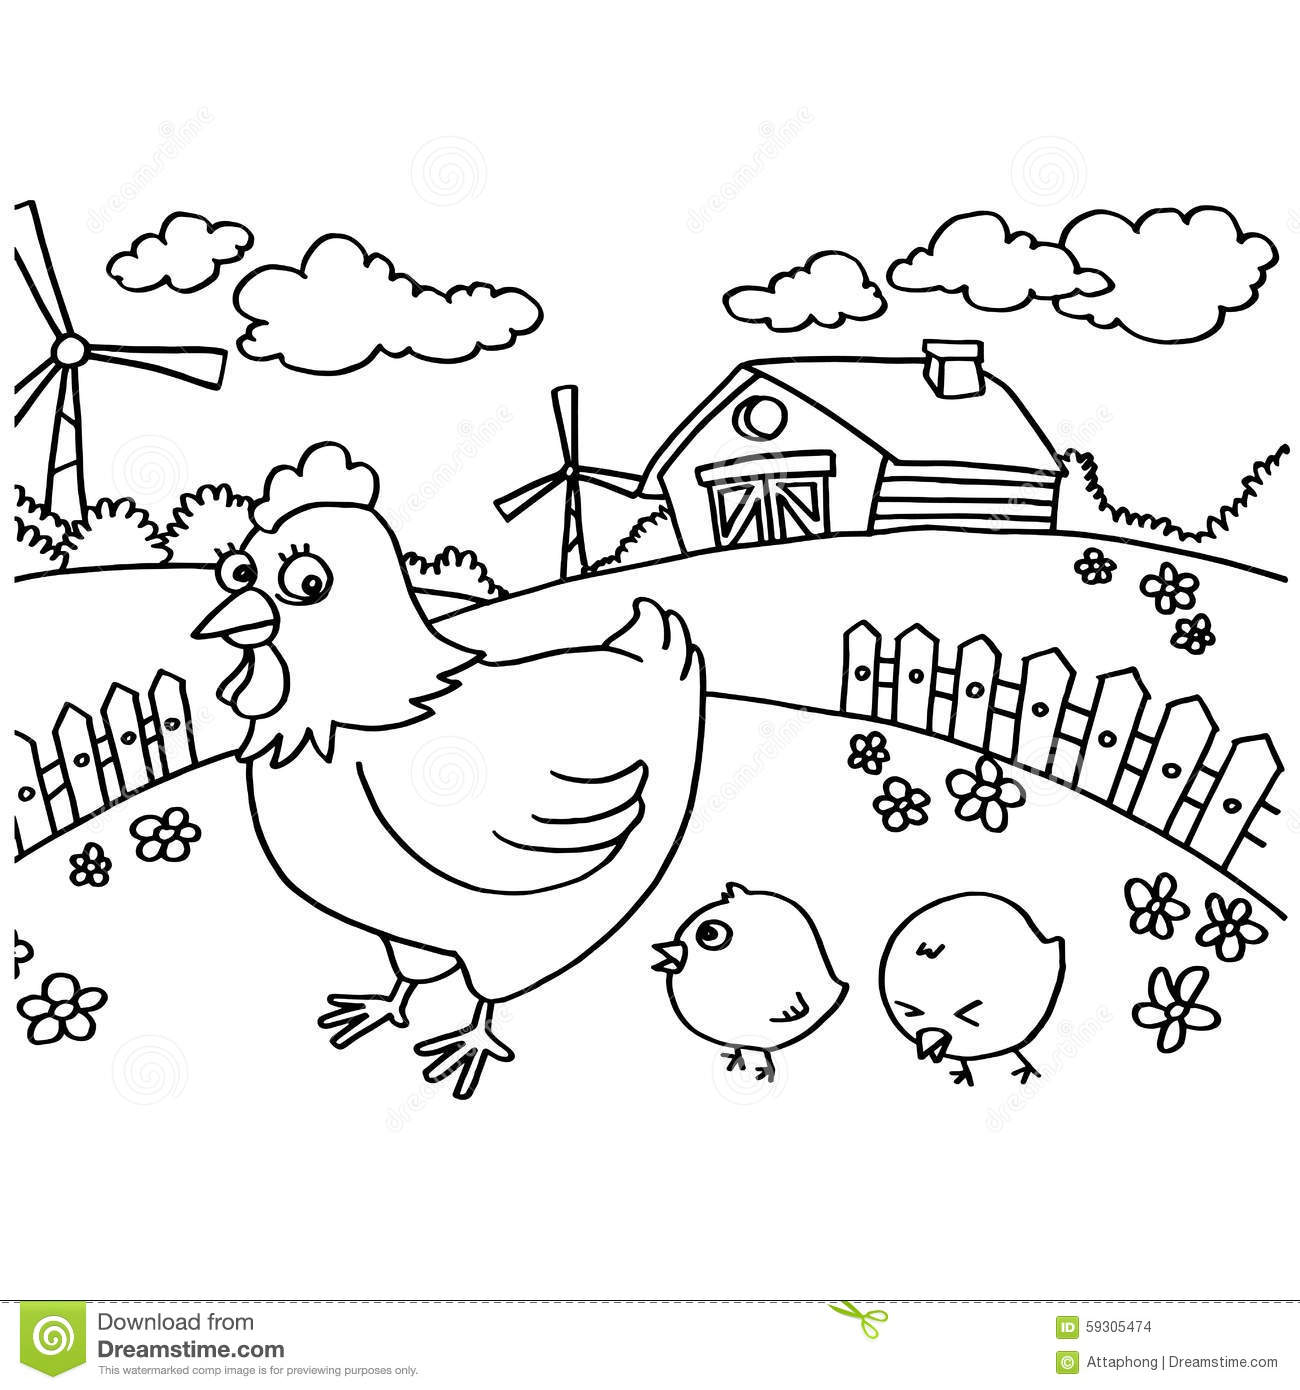 Chicken Coloring Pages Vector Stock Vector Illustration Of Meat Pages 59305474